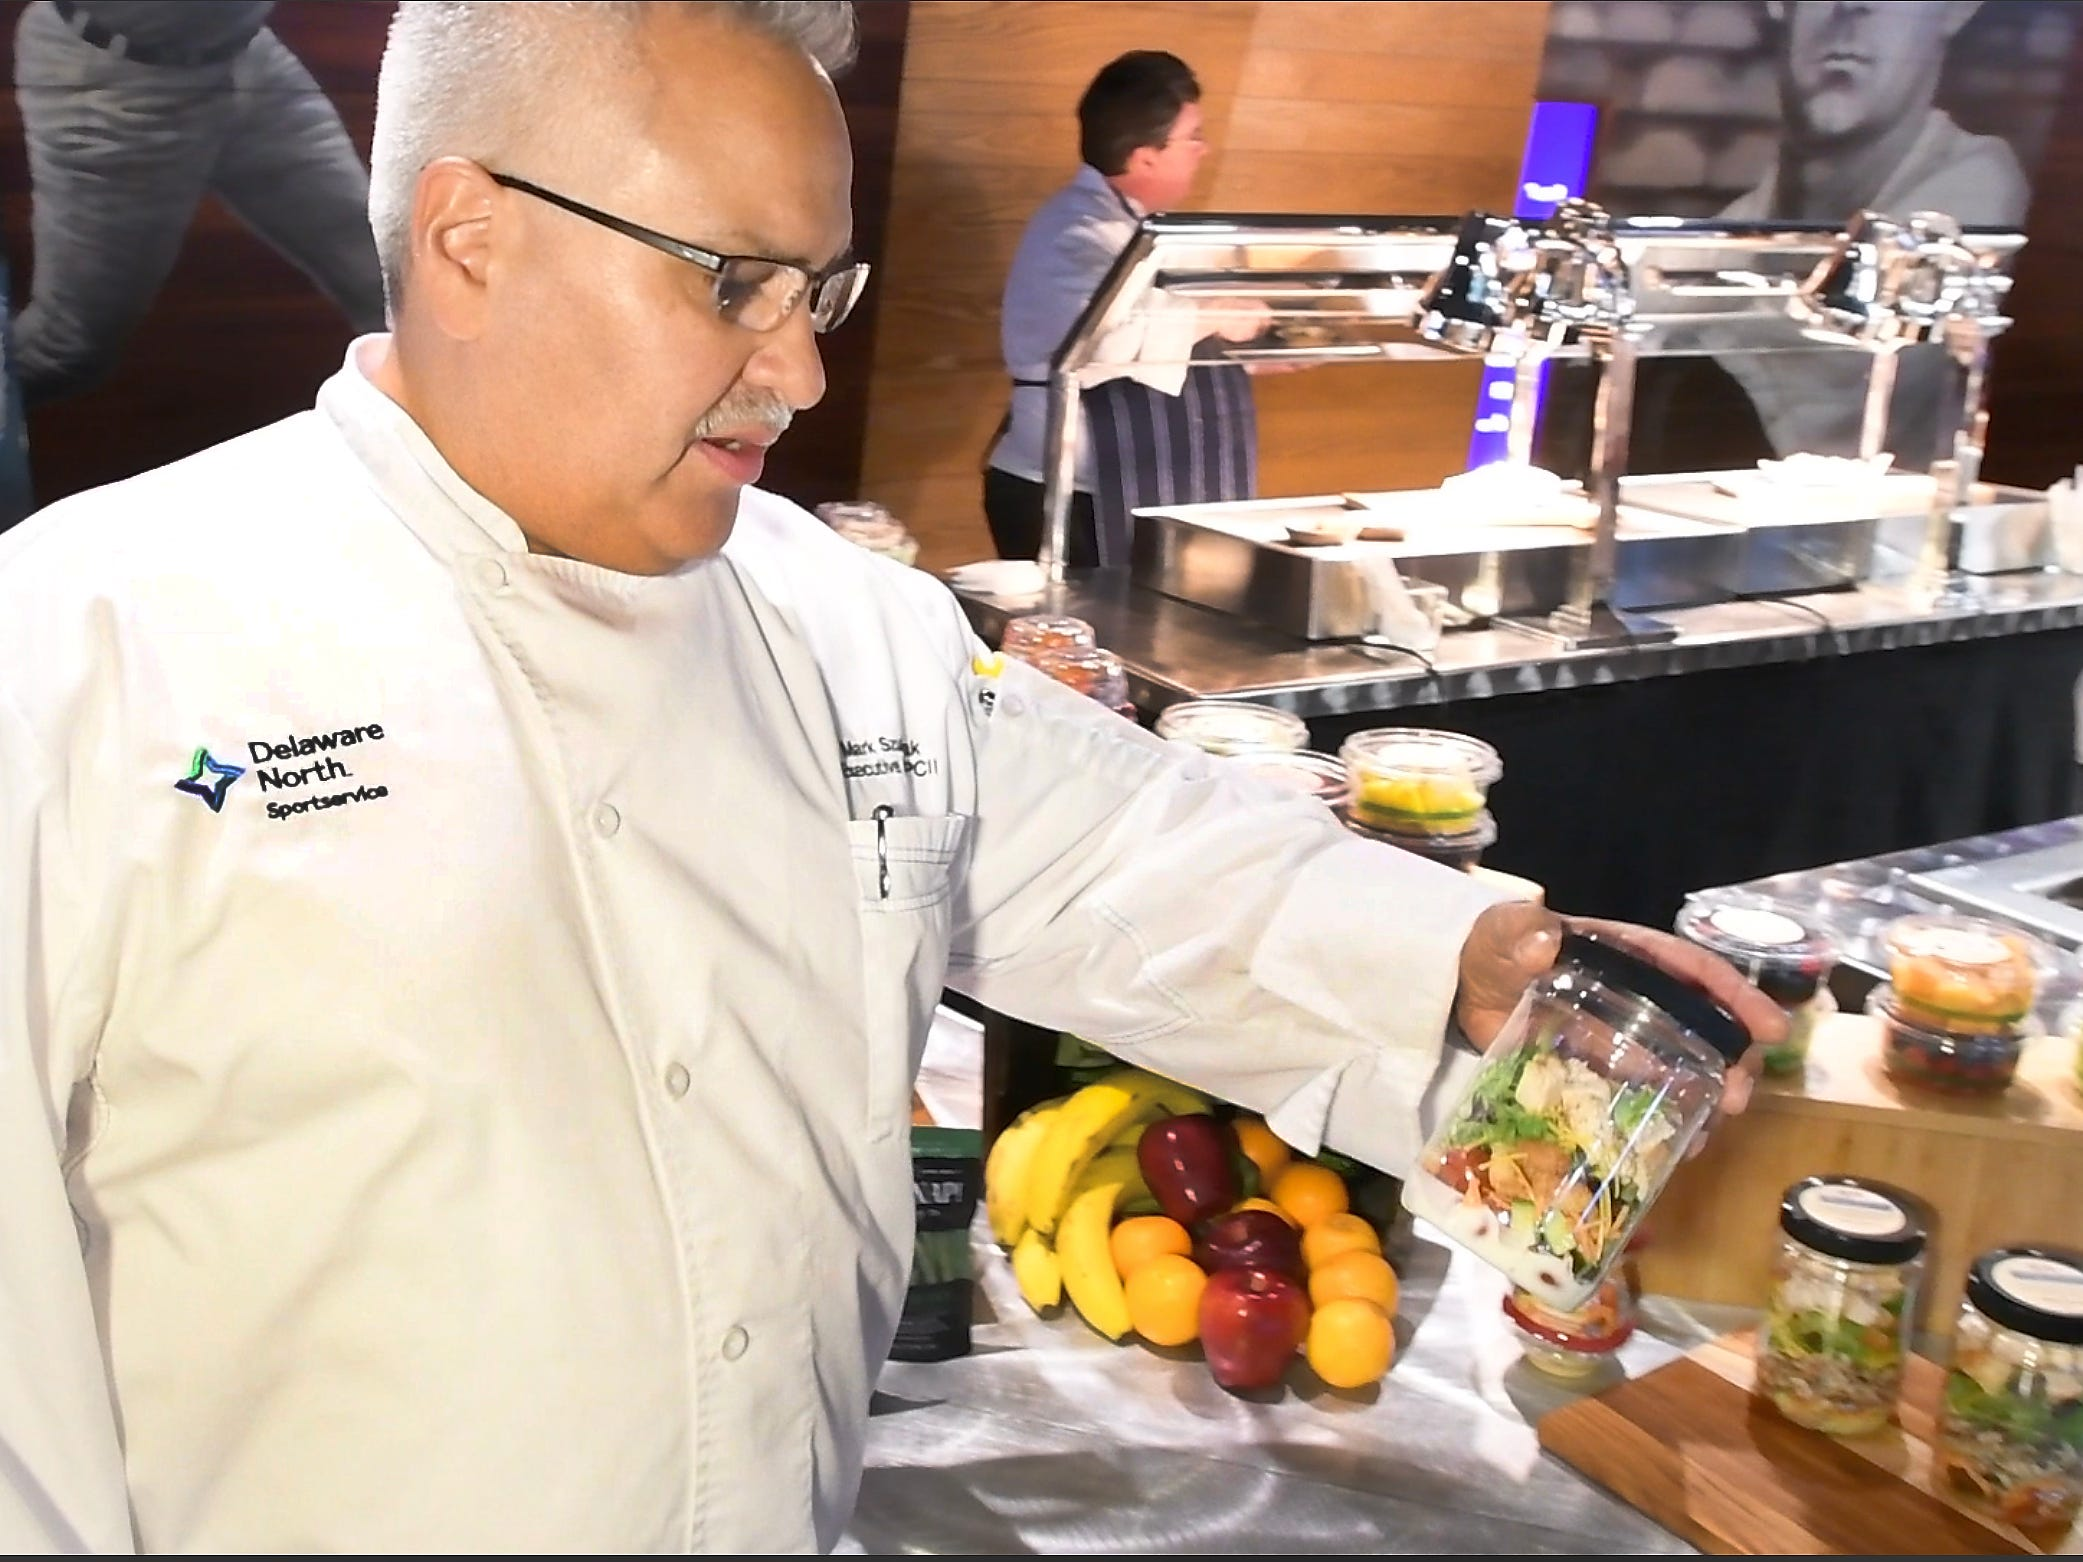 Executive Chef Mark Szubevczak shows off some of the various new menu items including the Garden Salad Jars consisting of fresh spring mix, cheese and vegetables layered in a jar with ranch dressing - all to be shaken and enjoyed, right from the jar.